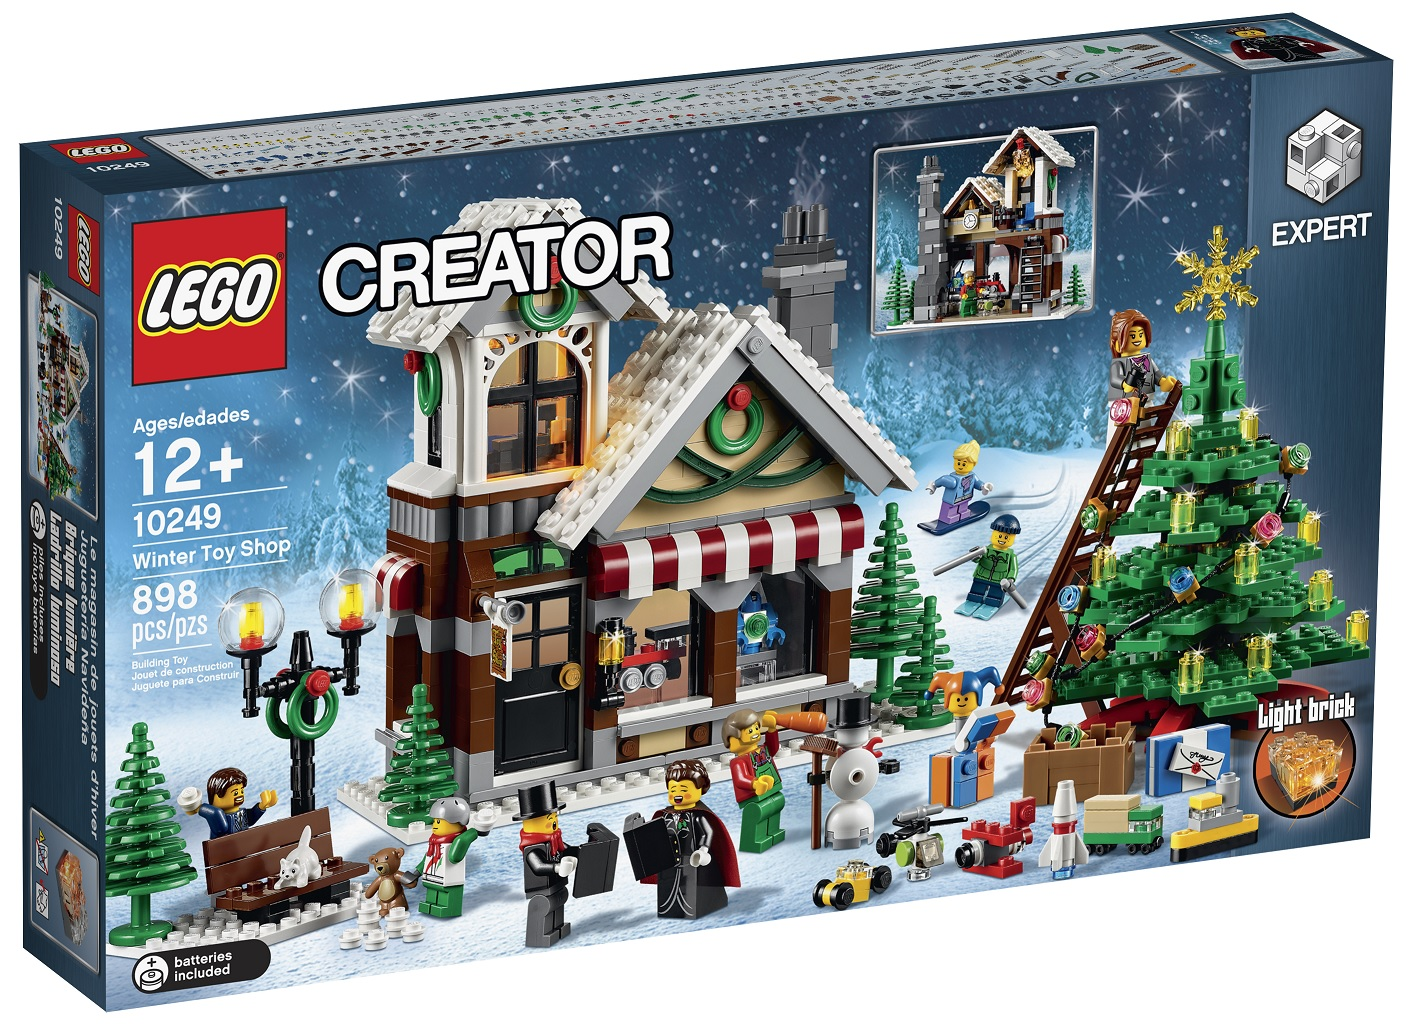 Lego 2013 Holiday Sets 1/2 2/2 (HR Images) - Special LEGO Themes ...